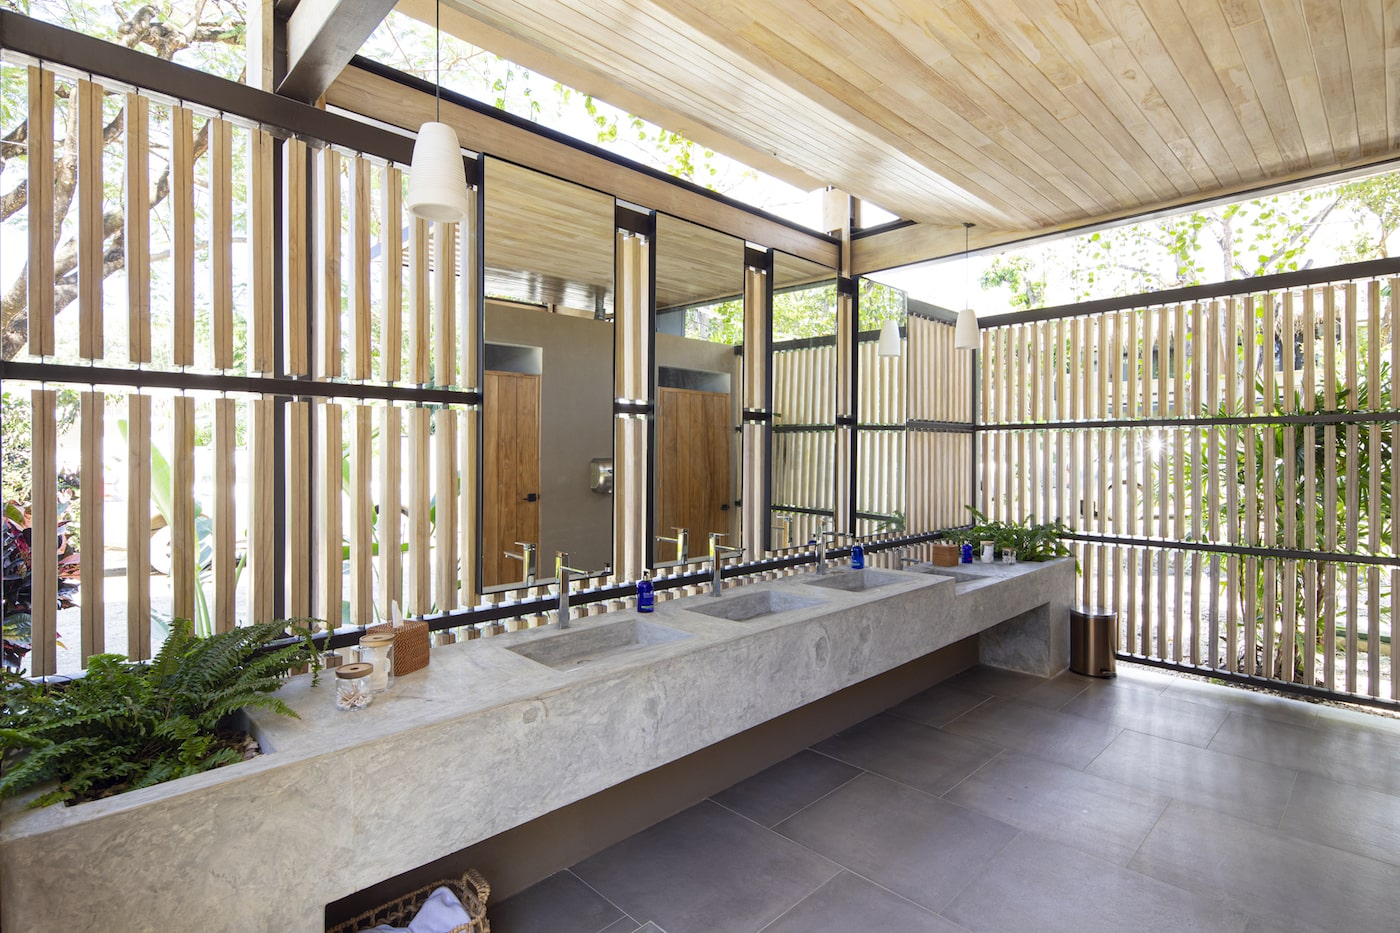 Bathroom with timber privacy screens and timber ceiling